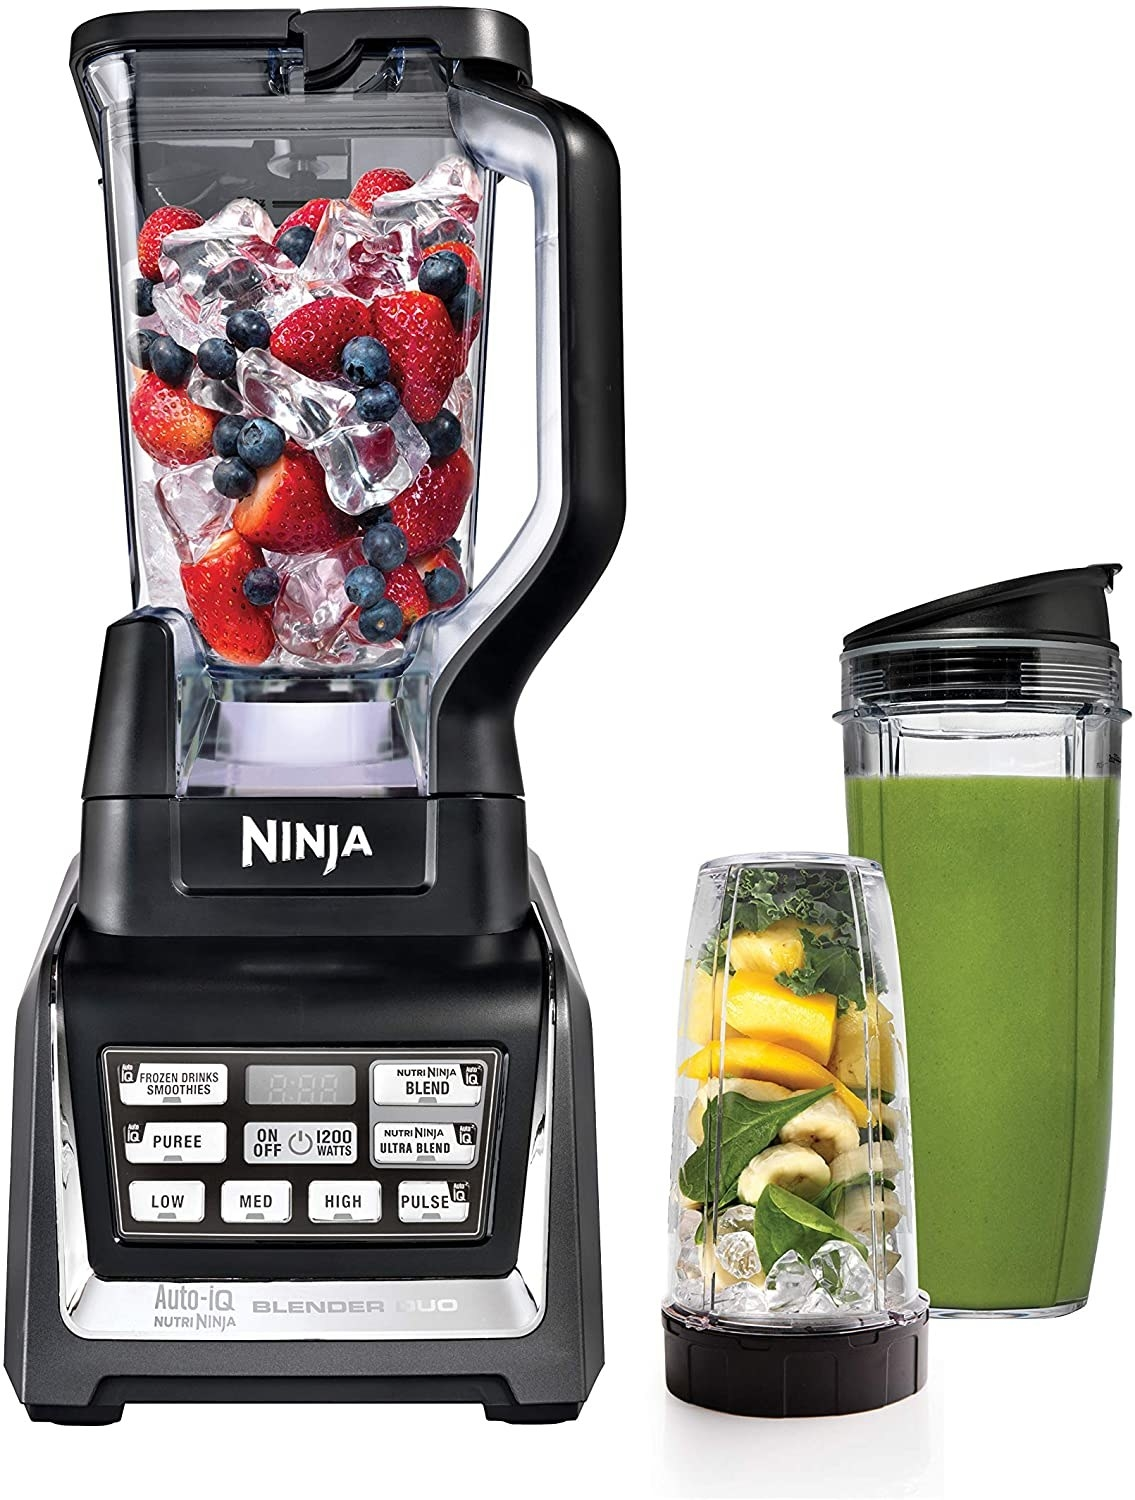 A blender with fruit and ice